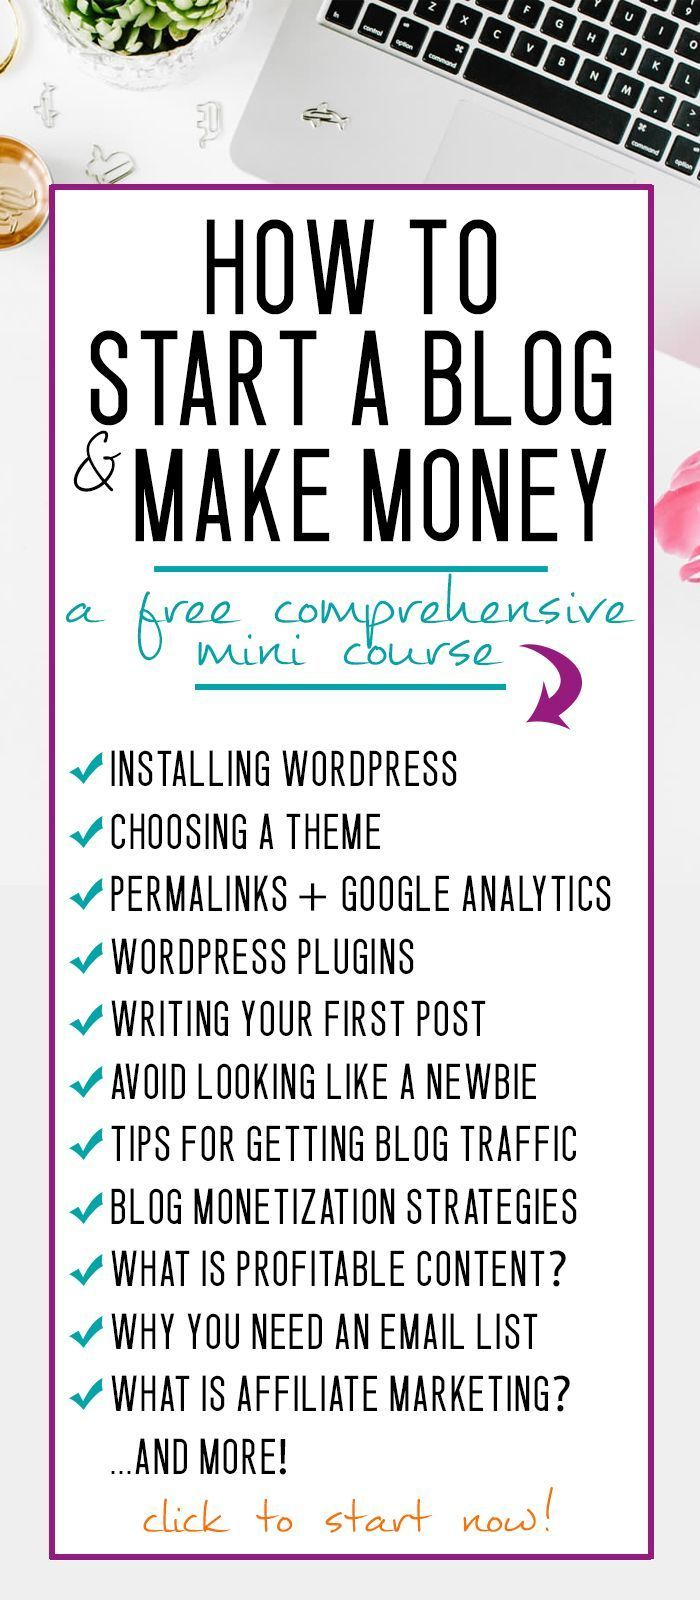 I make money on blogging via adsense and affiliate, there are several to choose from to make money online. http://t.umblr.com/redirect?z=http%3A%2F%2Fhome.iudder.ru%2Fhow-to-get-extra-money-on-kardashian-game%2F&t=NTFhMTJmOTEyN2M3MDEyYTc5ODQ3NTE4YmIyNTg4YjUyNjZmMGVkZCwxNjYwMTA0NTg3ODM%3D&b=t%3A3KrMuu1mkkMaasaAx7f1QA&p=https%3A%2F%2Frostislava1ki99.tumblr.com%2Fpost%2F166010458783%2Fhow-to-get-extra-money-on-kardashian-game-very&m=1 Ready to make some money, ways To Make Money Off...